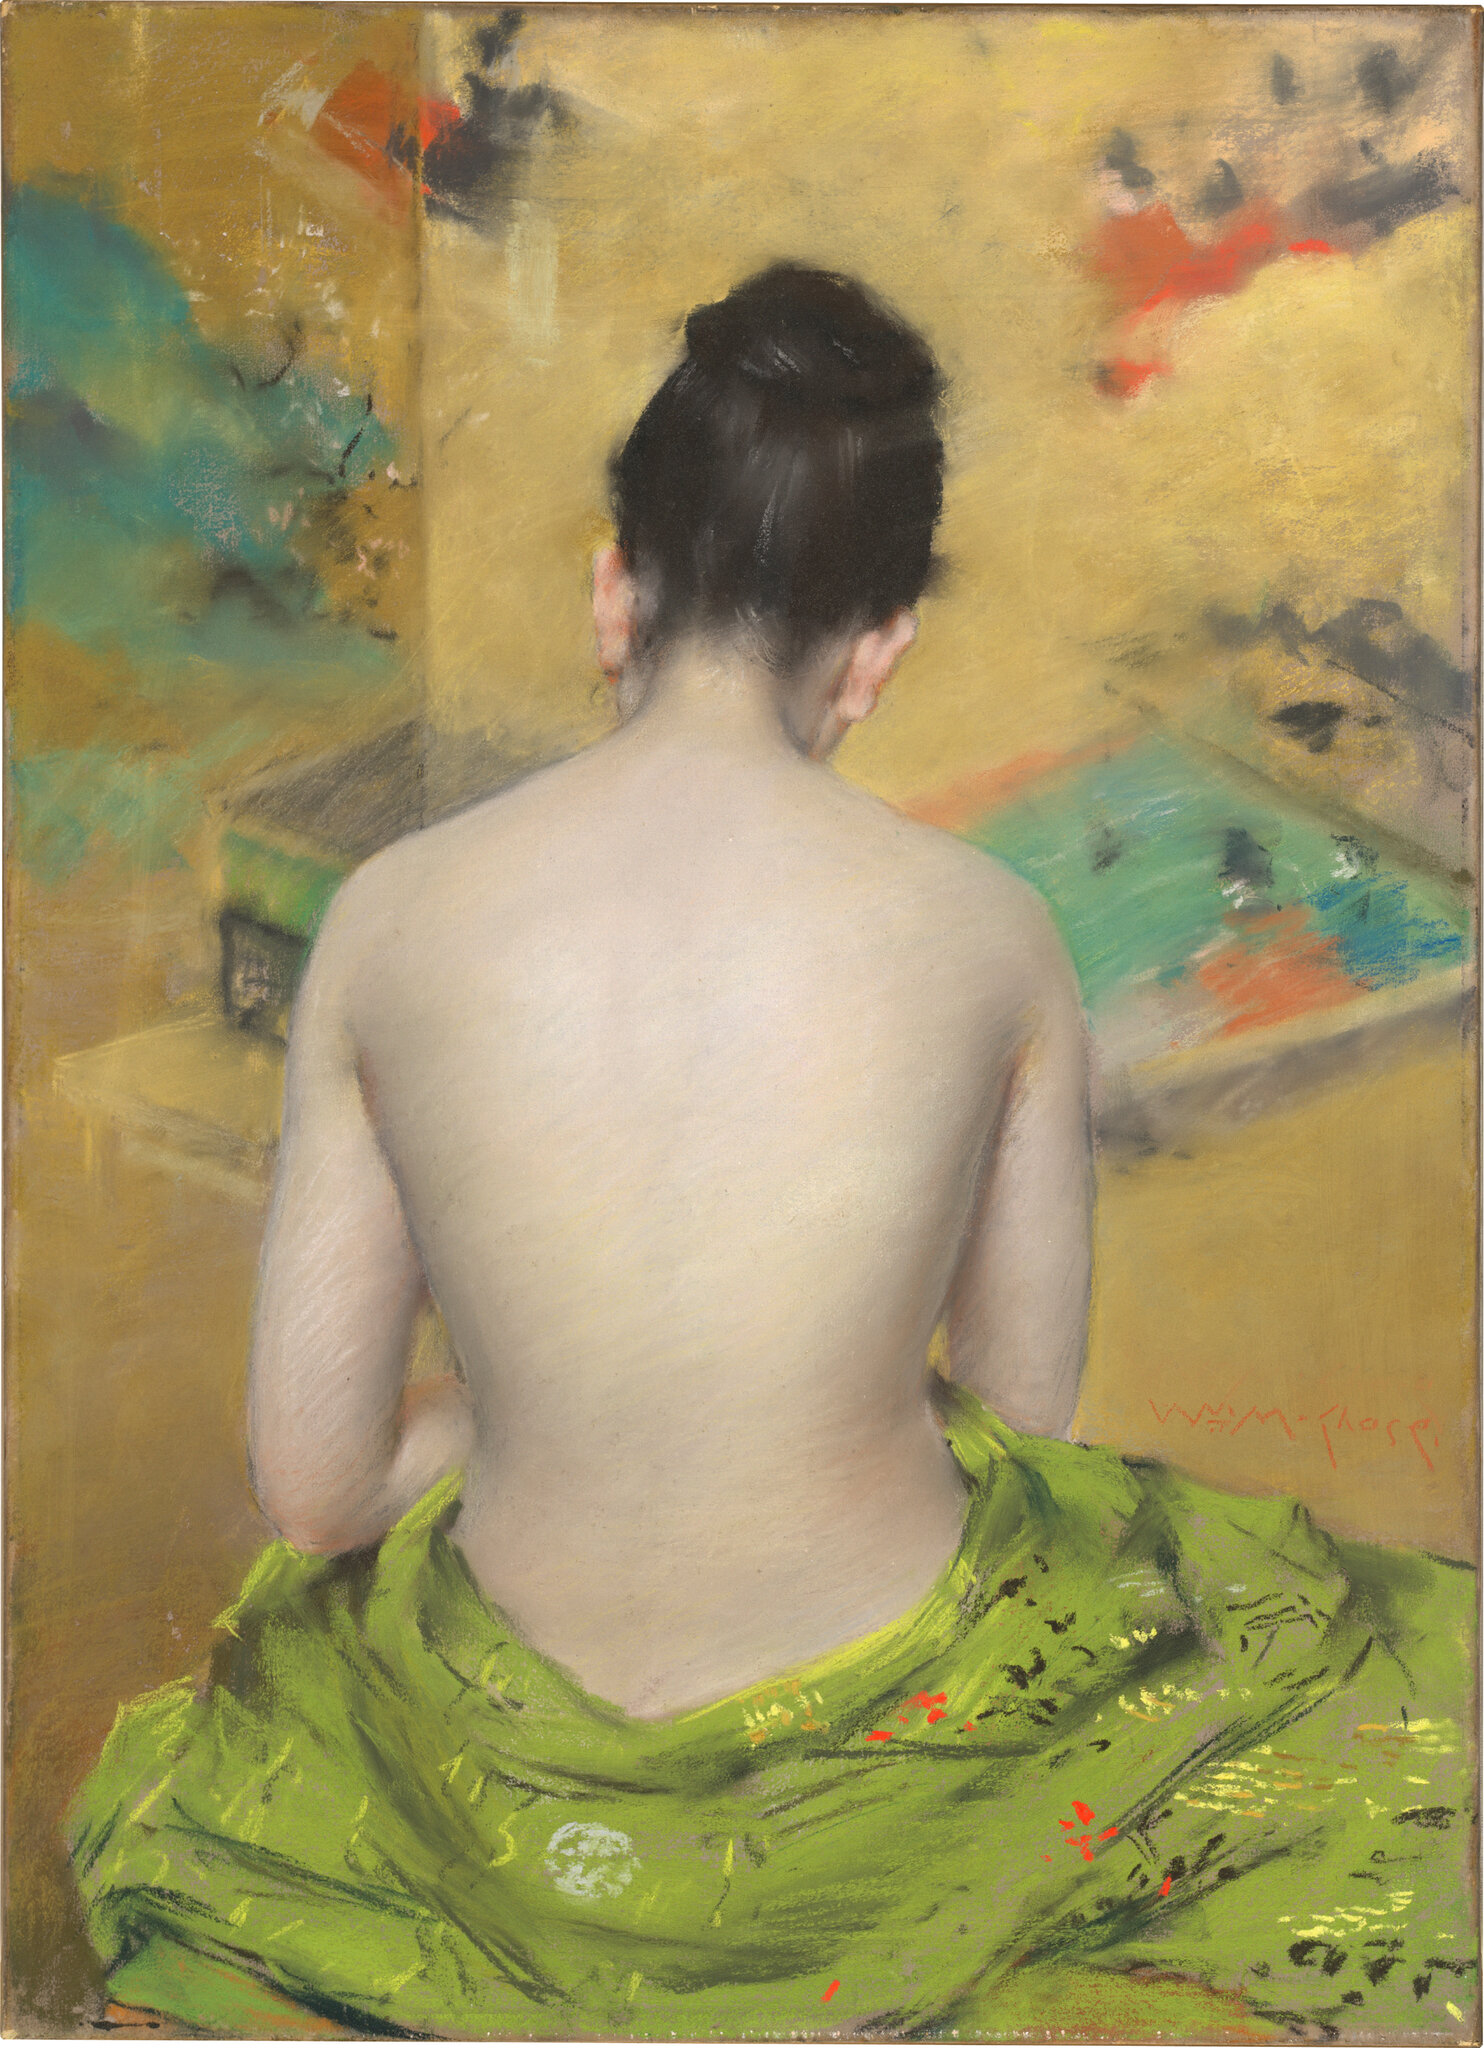 Major Exhibition Traces the History of Pastel in Art at